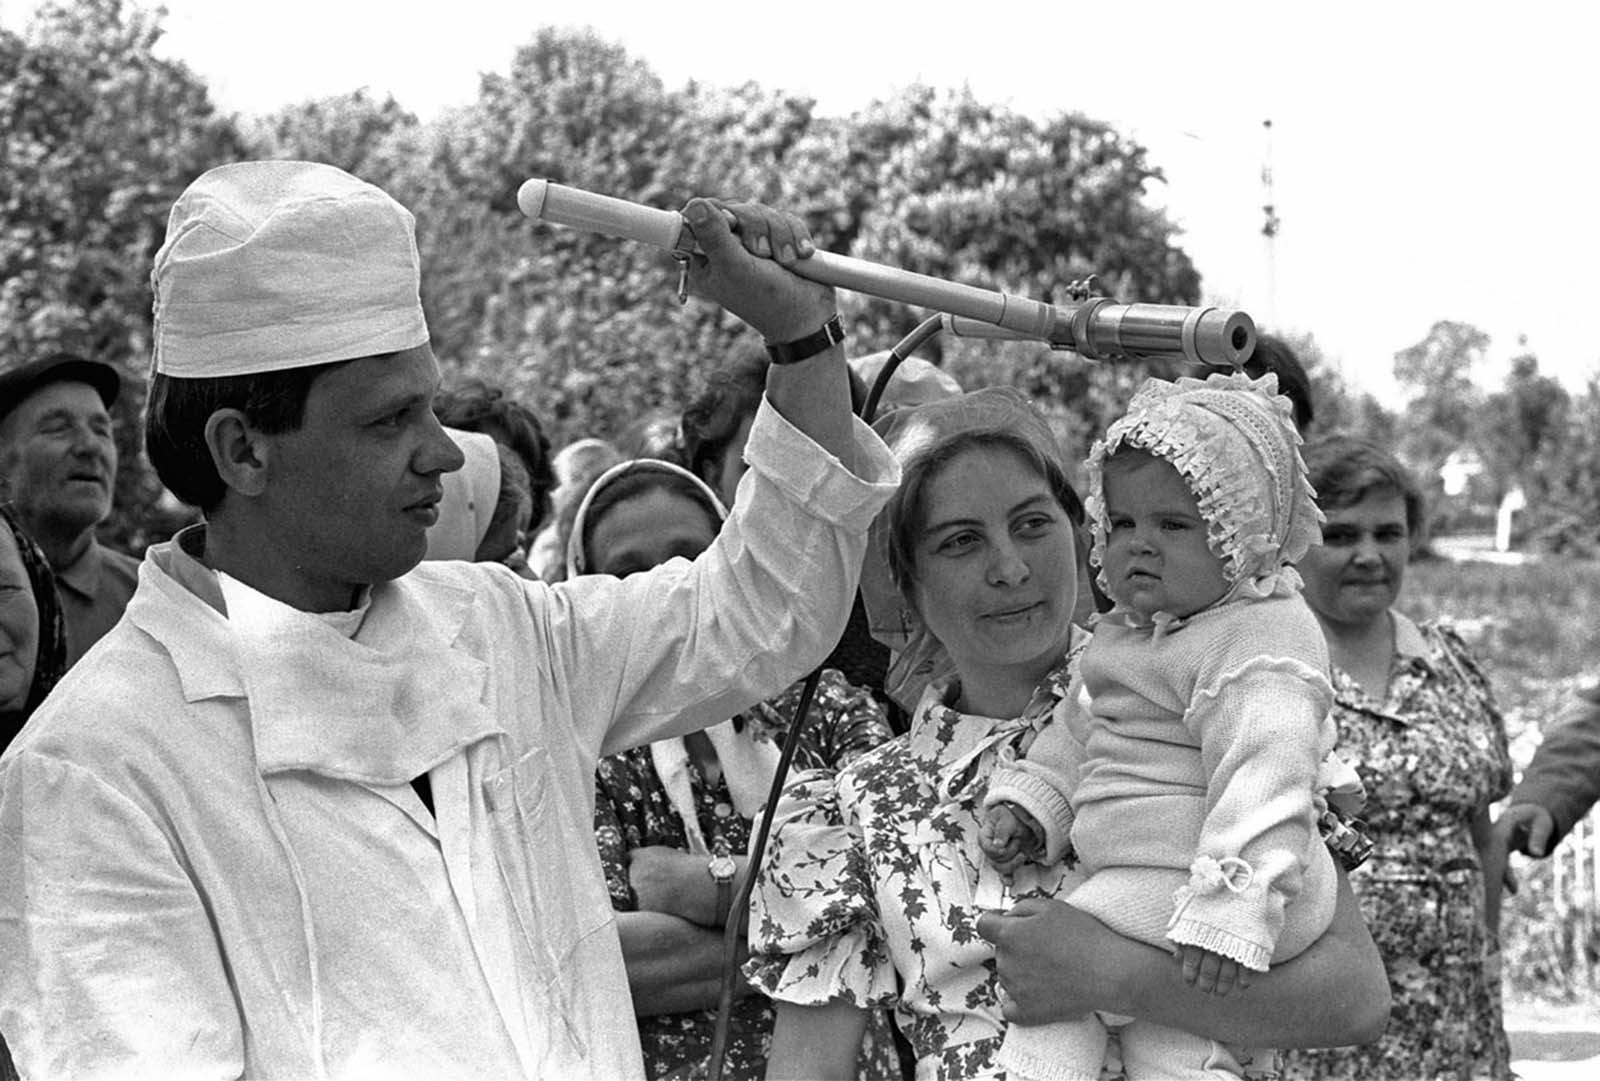 A Soviet technician checks the toddler Katya Litvinova during a radiation inspection of residents in the village of Kopylovo, near Kiev, on May 9, 1986.